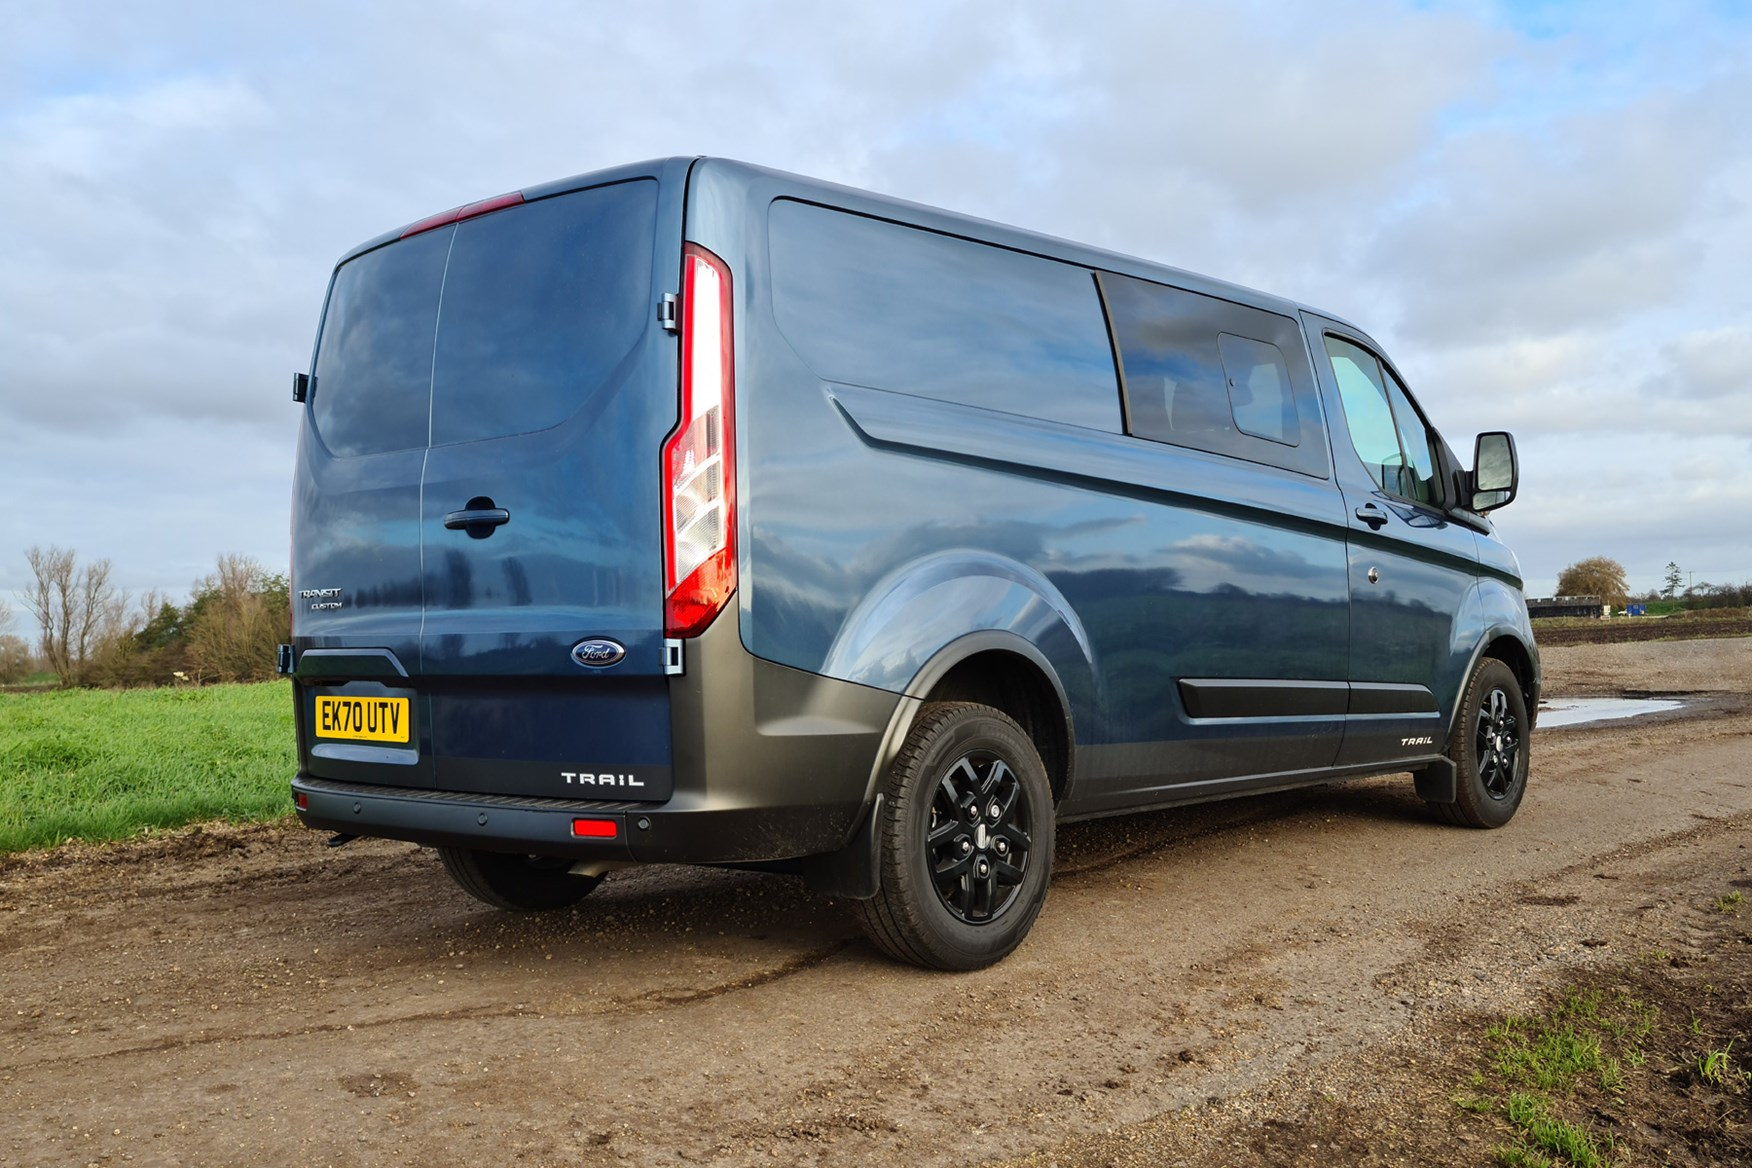 Ford Transit Custom Trail review, L2, DCiV, 2020, rear view, Chrome Blue